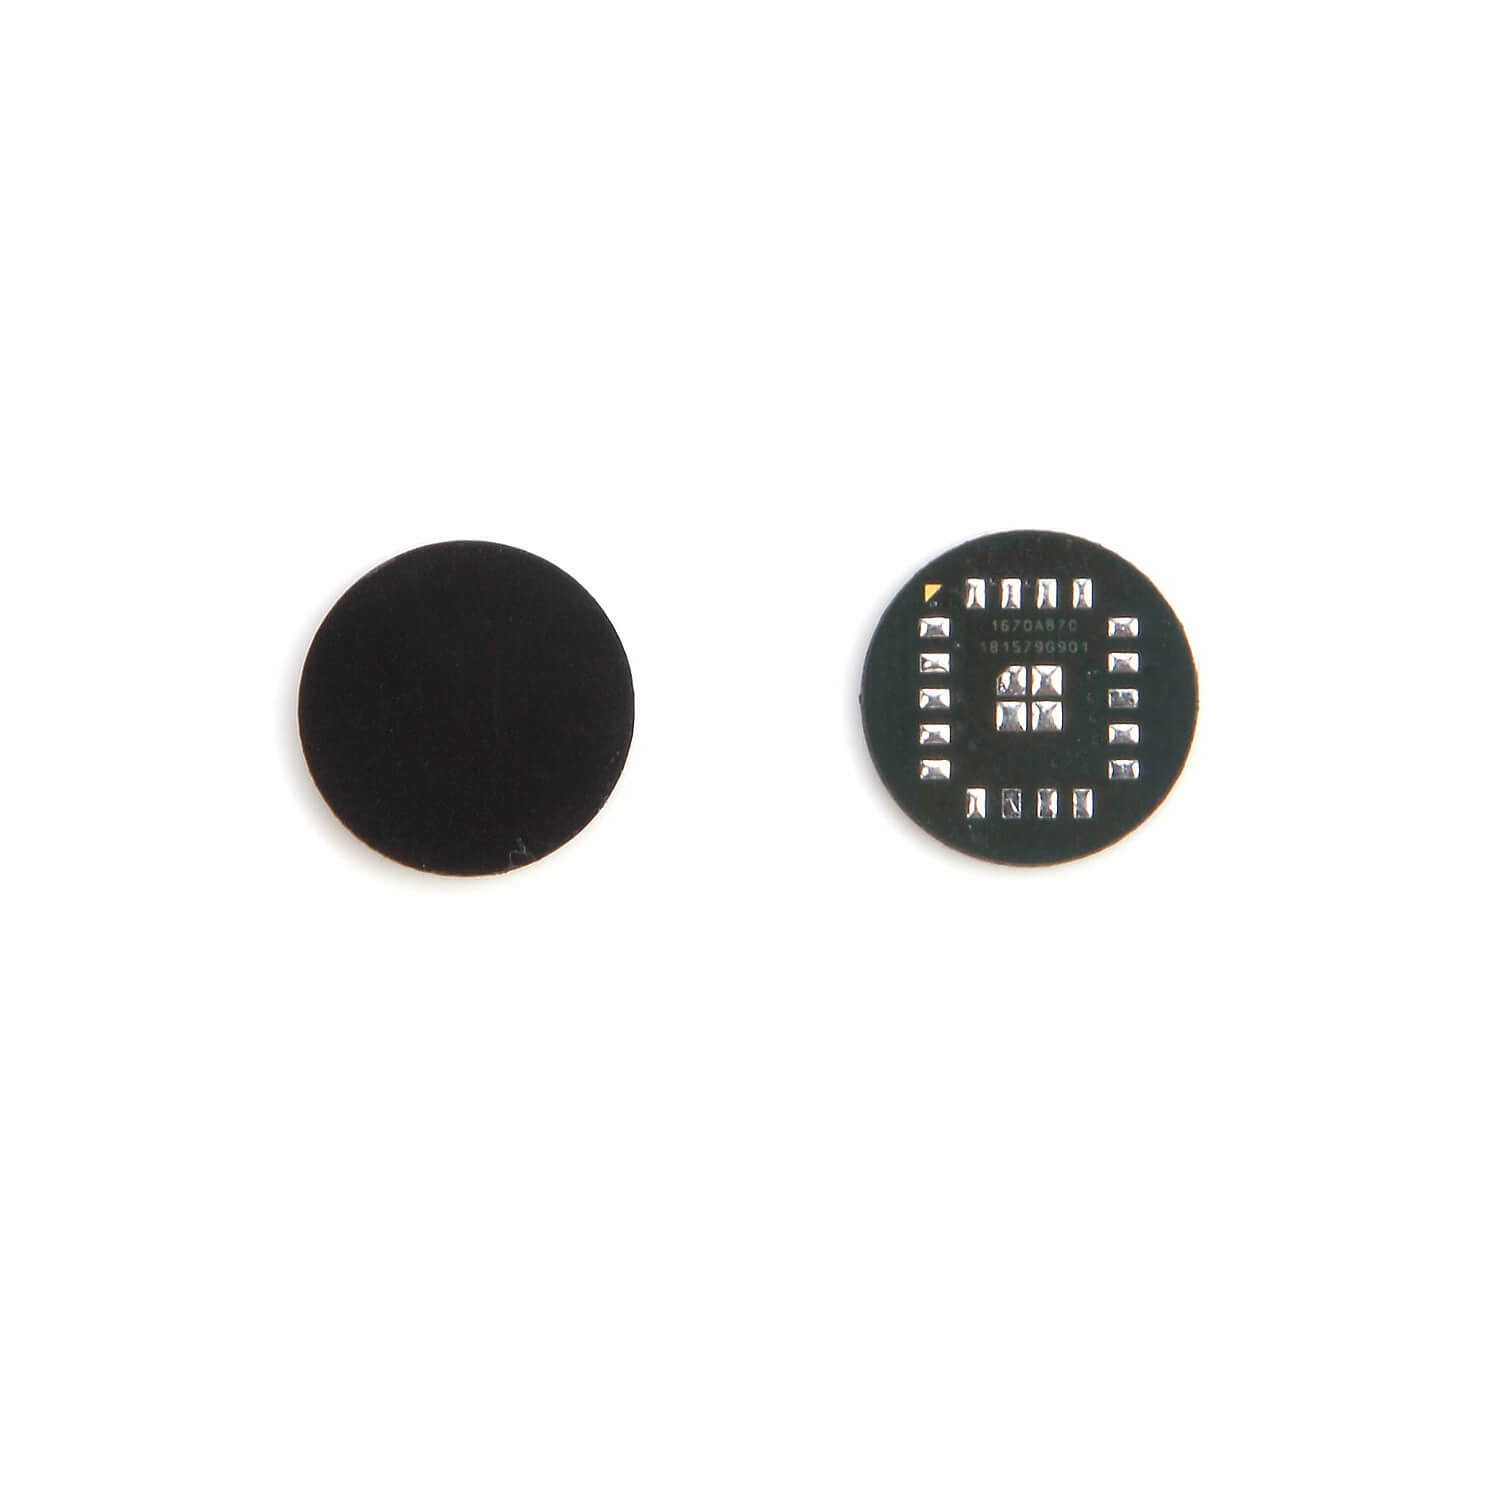 Low-Cost Mini 82*62 pixel Circular Fingerprint Sensor | Midas Touch